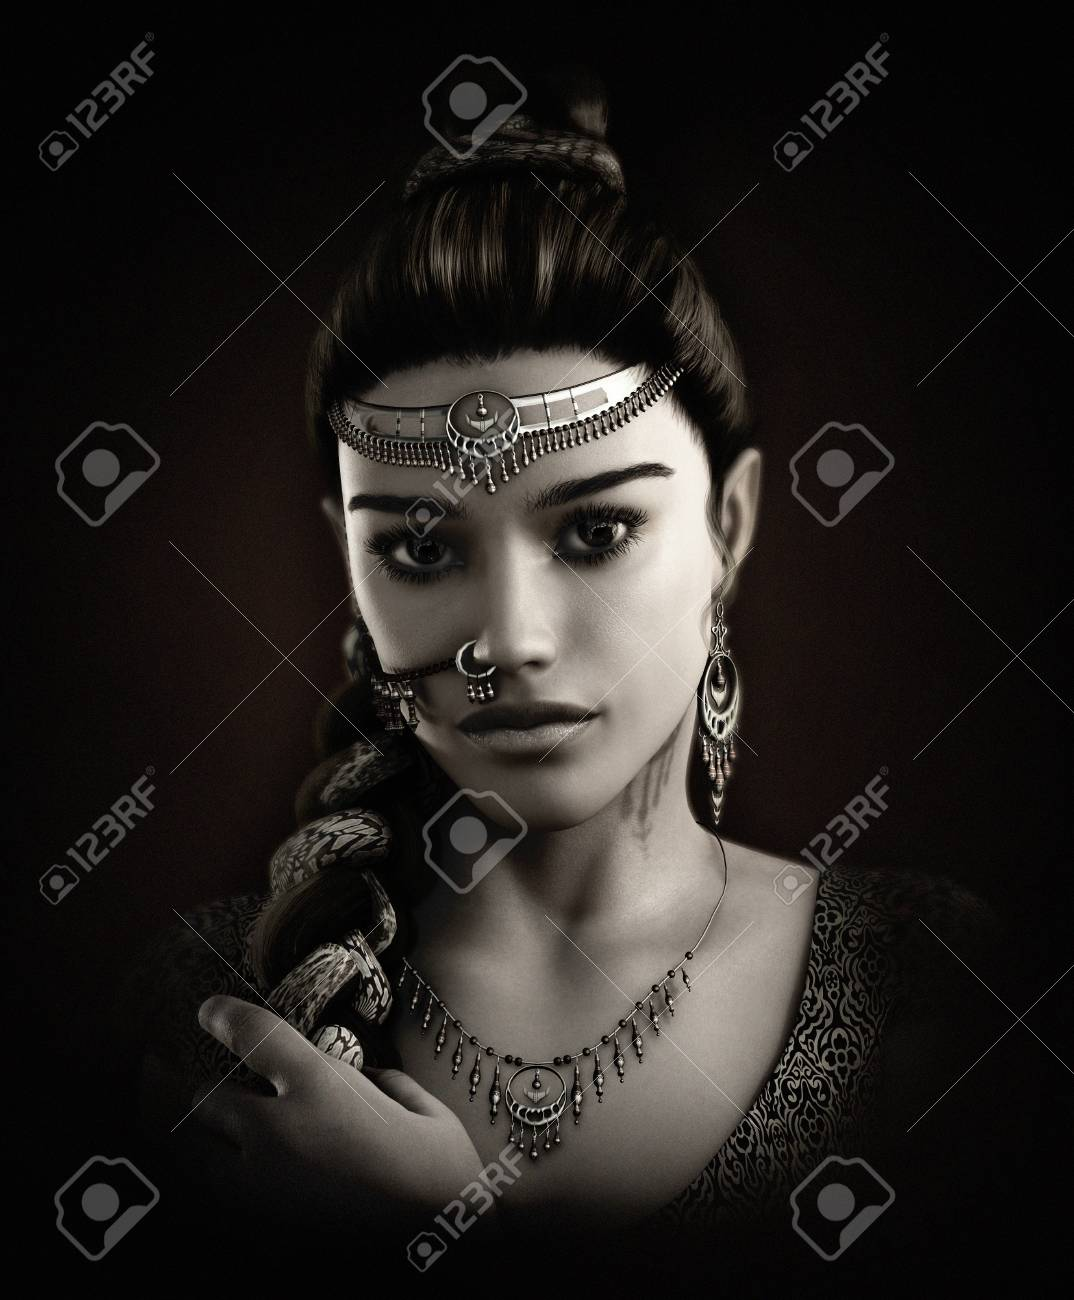 3d computer graphics of a portrait of a young lady with an indian..